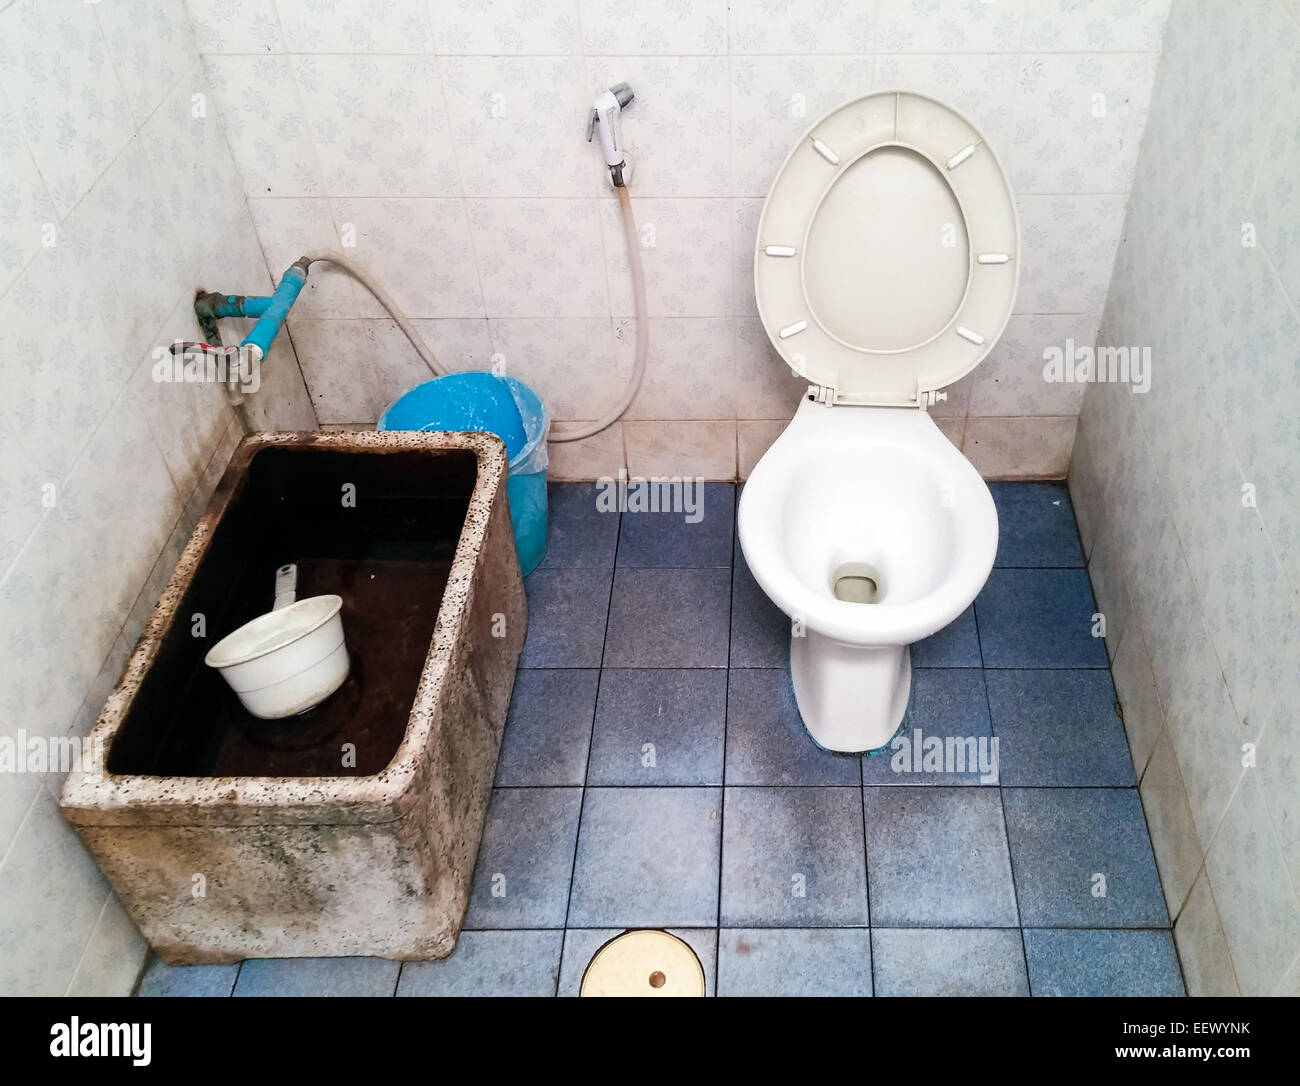 Dirty public toilet of the Thai temple. - Stock Image